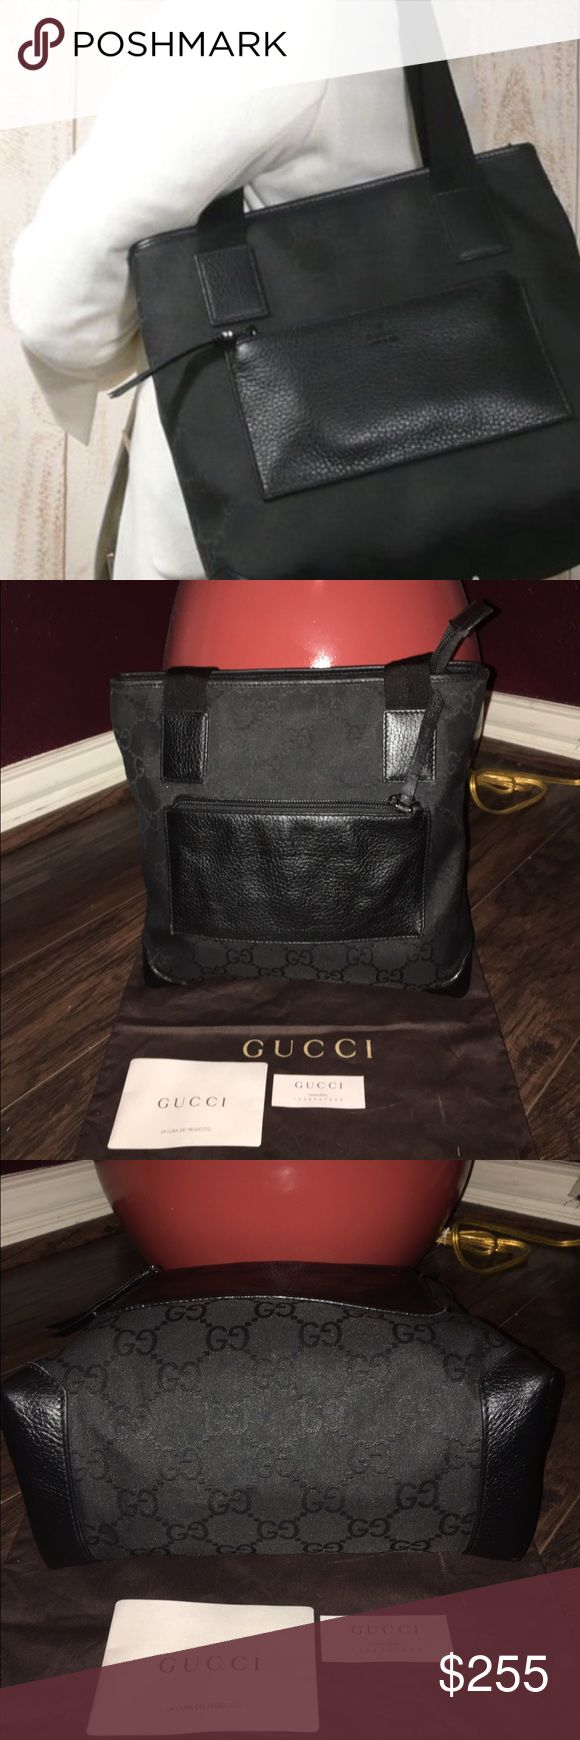 Authentic Gucci bag This purse is in perfect condition I bought it a few days ago from another posher she had it listed as new with tags,I never wore the bag so it's brand new the purse is beautiful but just not what I'm looking for so still shopping and hoping this can go to someone who will love it only looking to sell I don't trade dust bag included Gucci Bags Totes